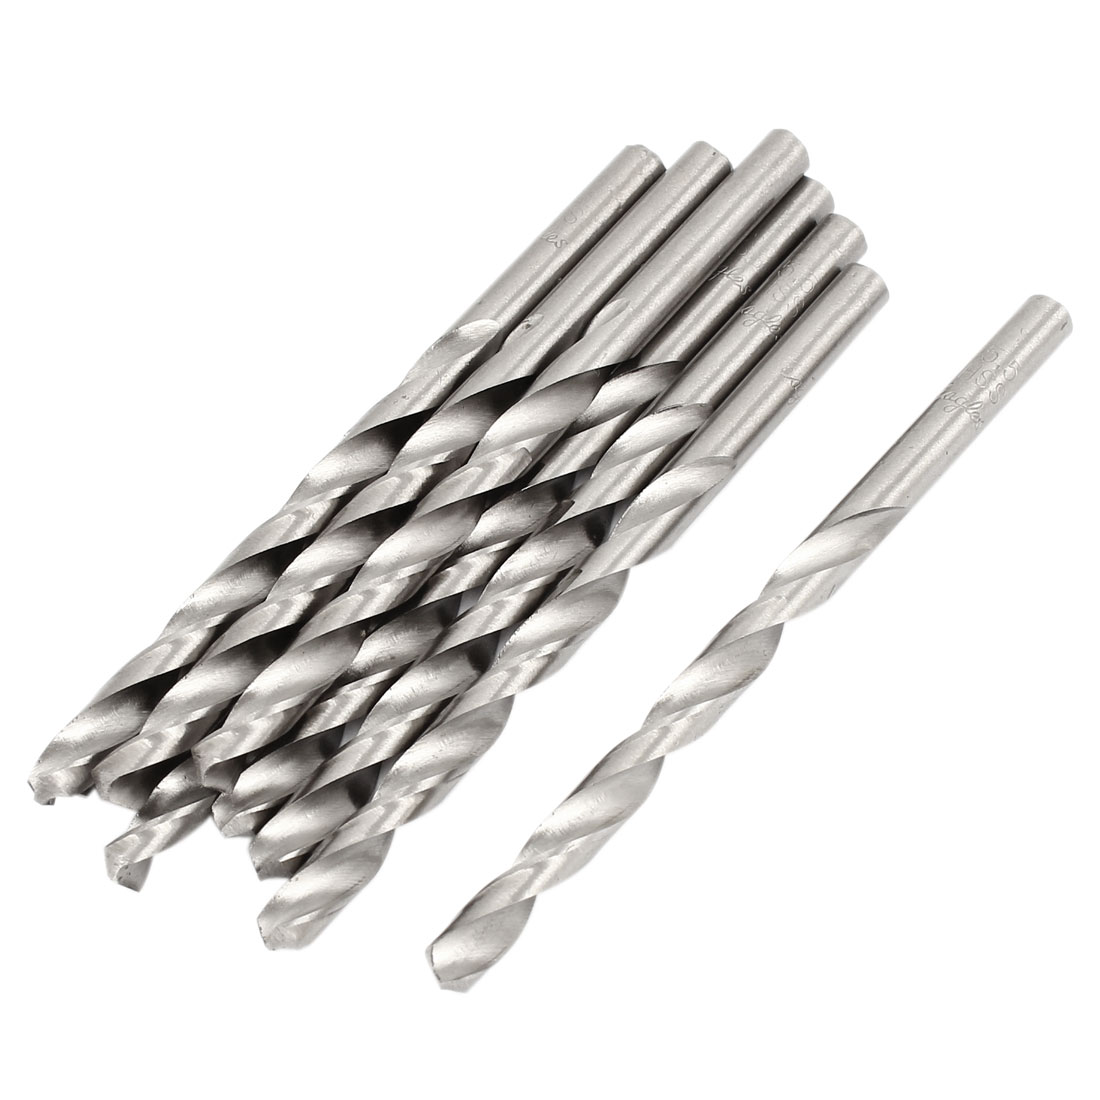 HSS 5.5mm x 65mm Tip Straight Shank Twist Electric Drill Drilling Bit 10 Pcs